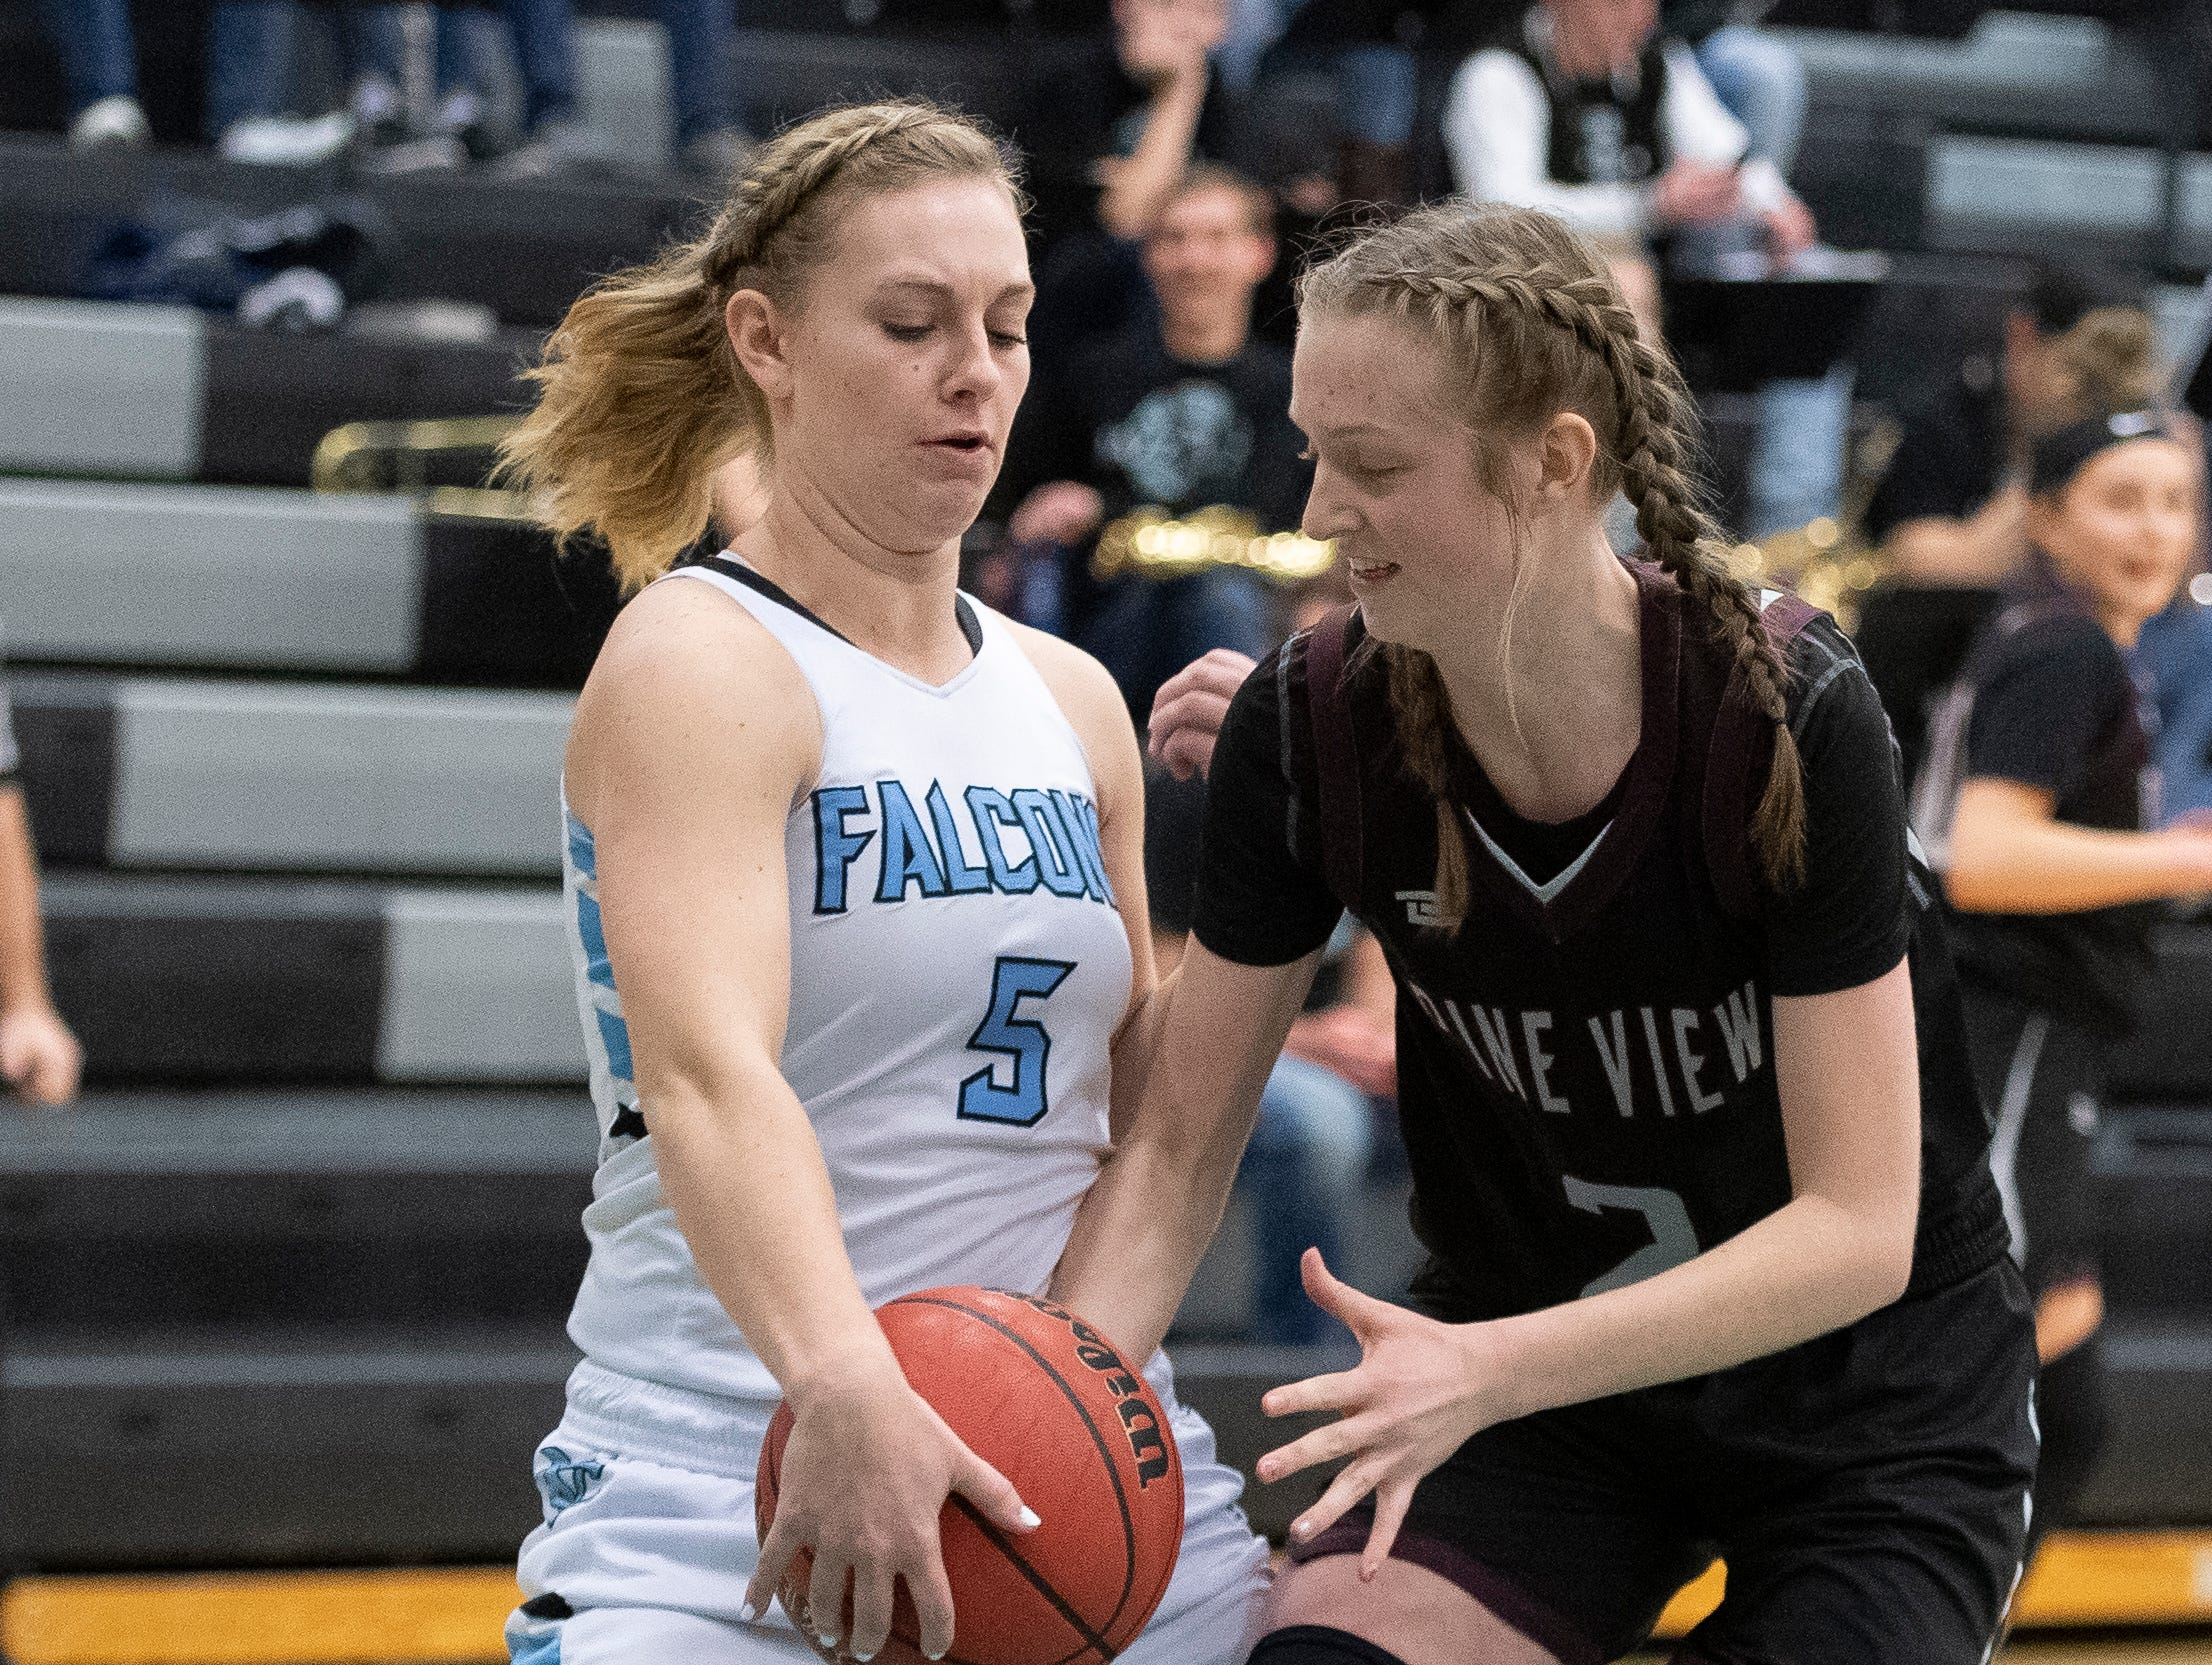 The Canyon View girls basketball team plays against Pine View at CVHS Tuesday, January 15, 2019. The CVHS Falcons won, 48-46.